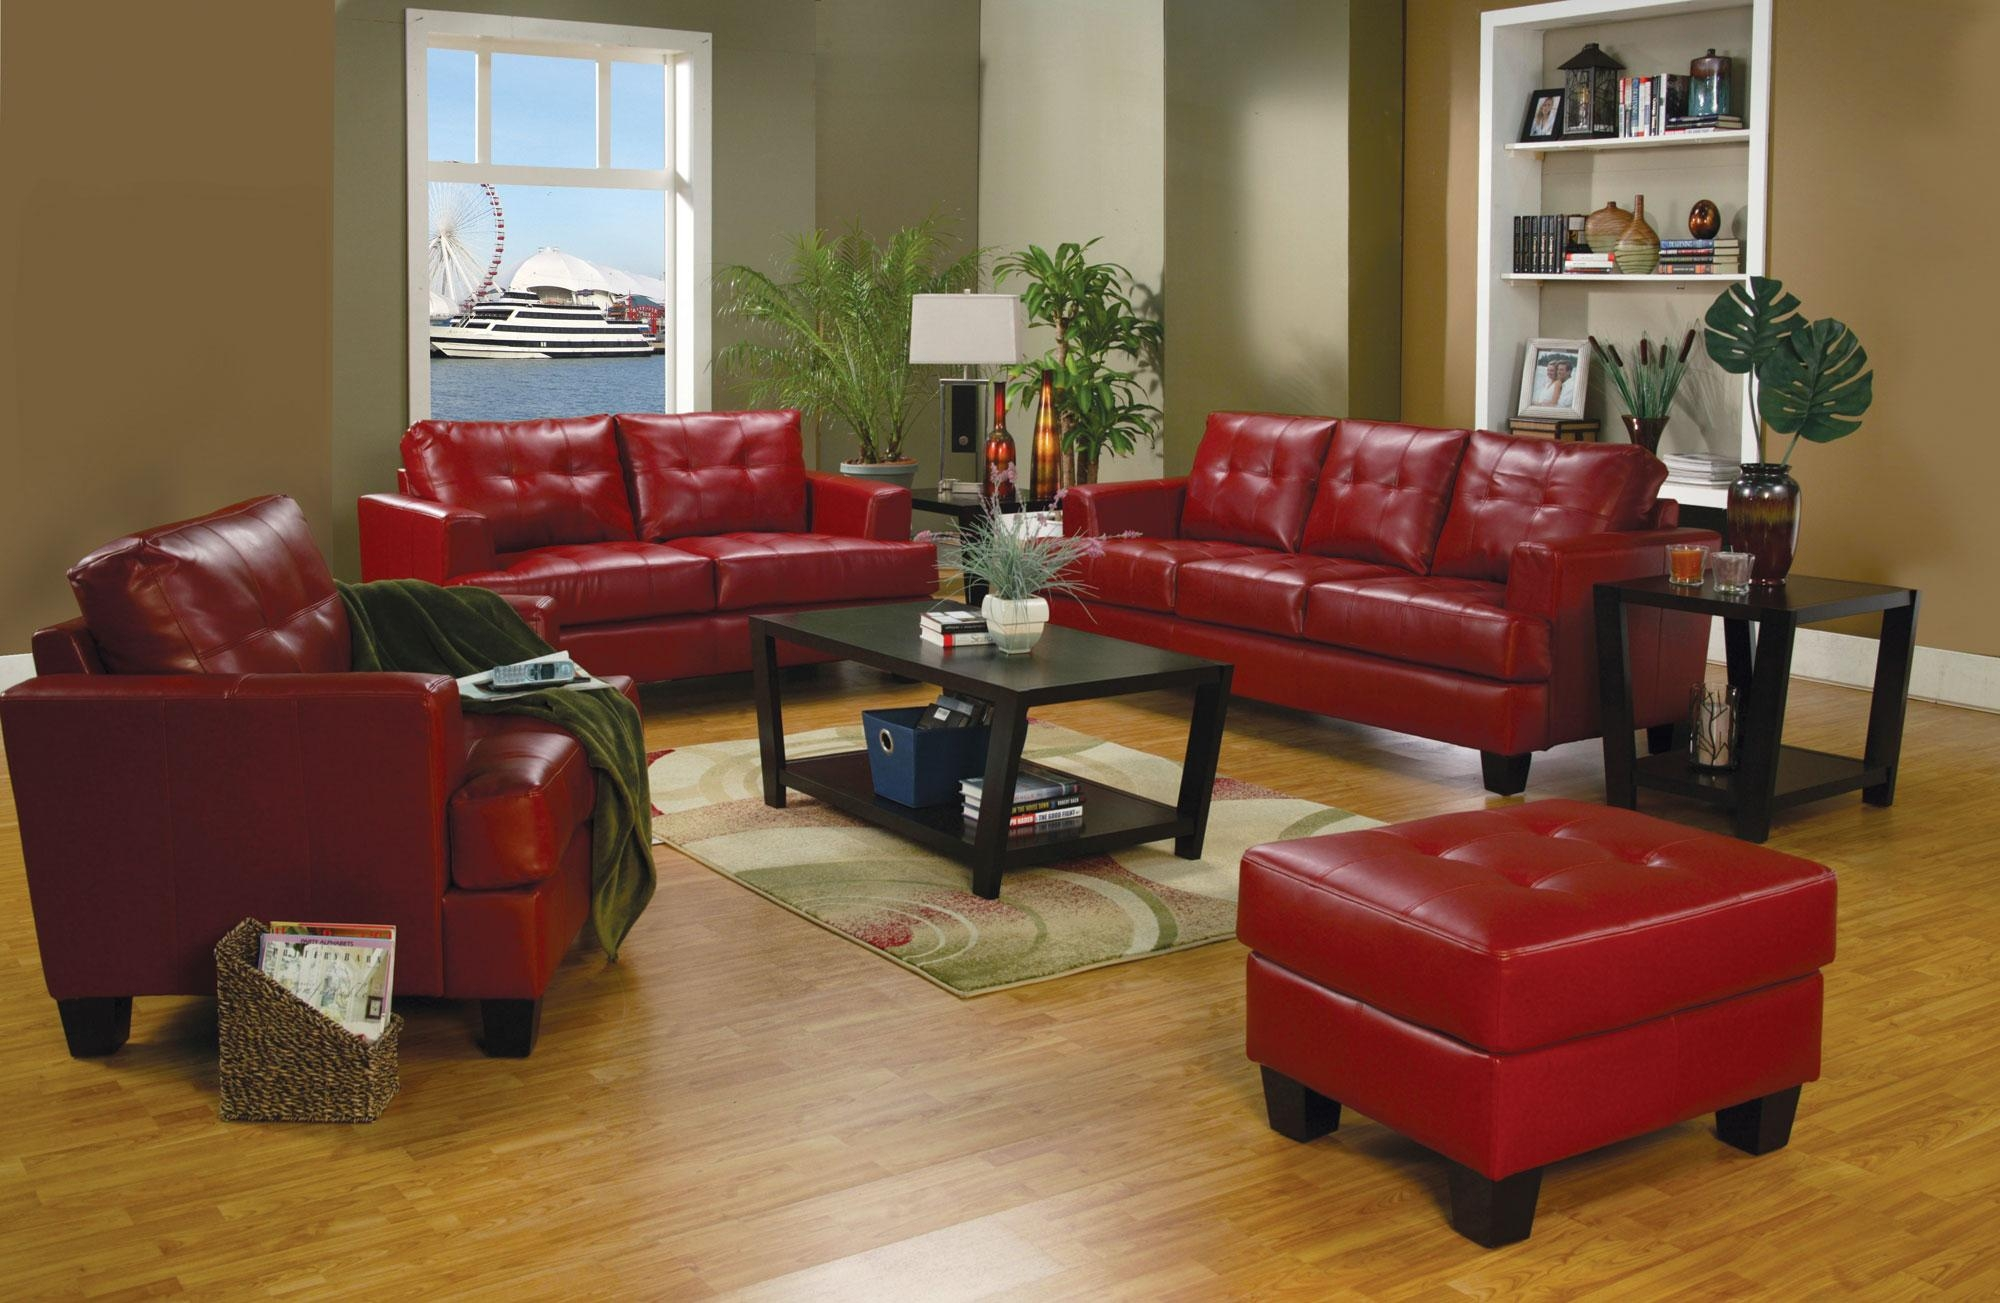 Red Leather Sofa With Ottoman For Small Living Room Spaces With Inside Dark Red Leather Sofas (Image 16 of 20)